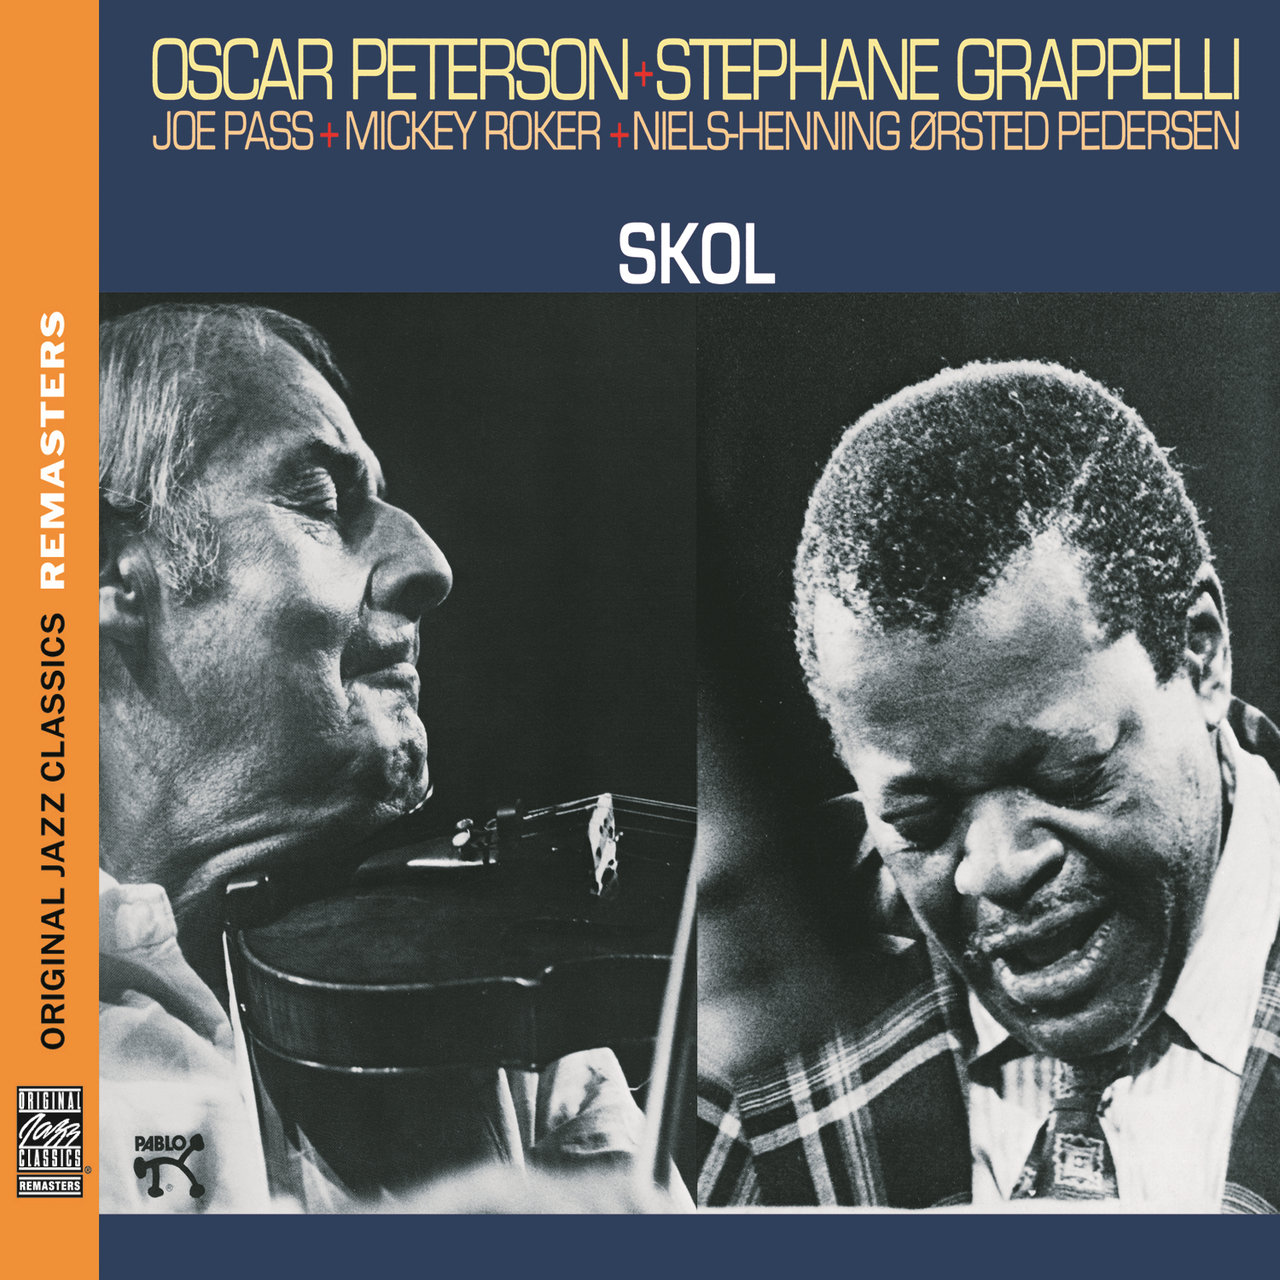 Skol (Original Jazz Classics Remasters) (Live At The Tivoli Gardens, Copenhagen / 1979)